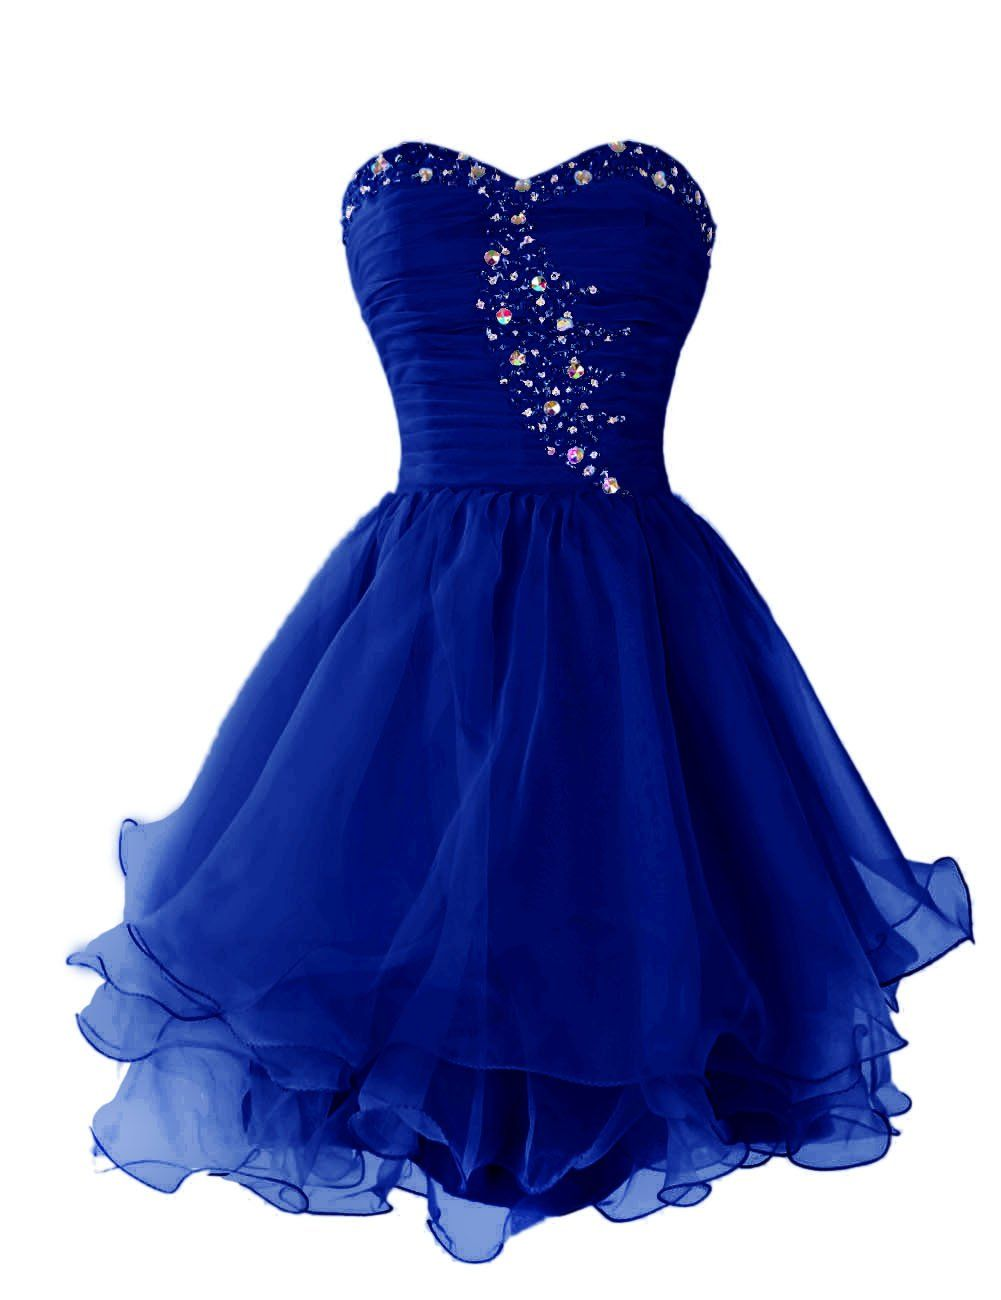 Dressystar short homecoming dresses sweetheart prom party gowns lace